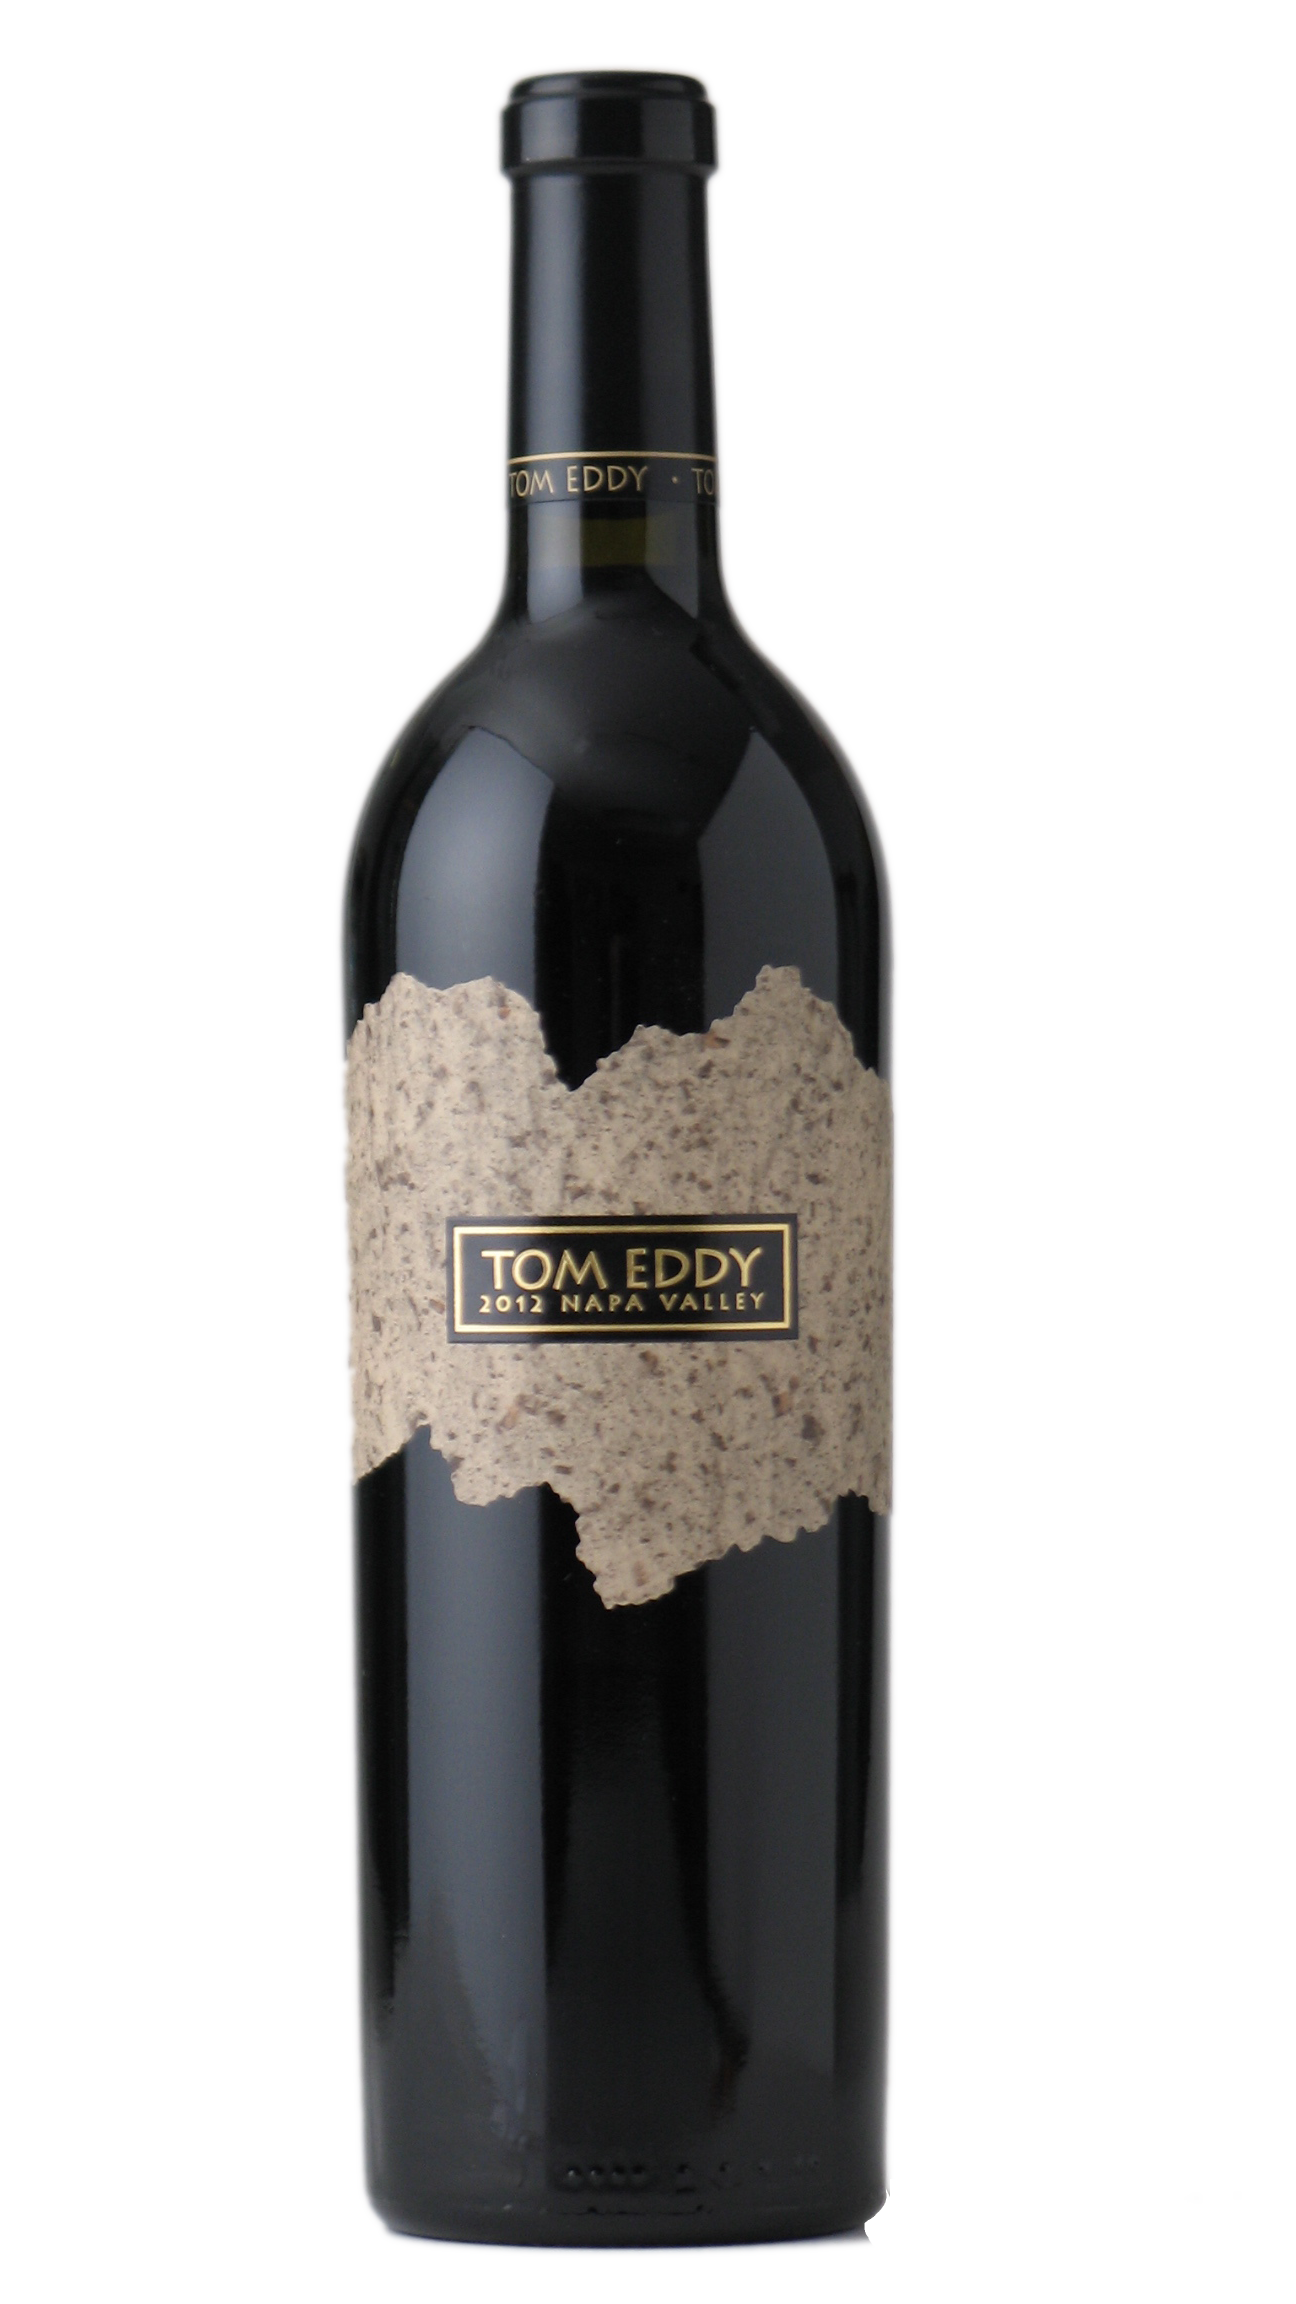 Tom Eddy Napa Valley Cabernet Sauvignon